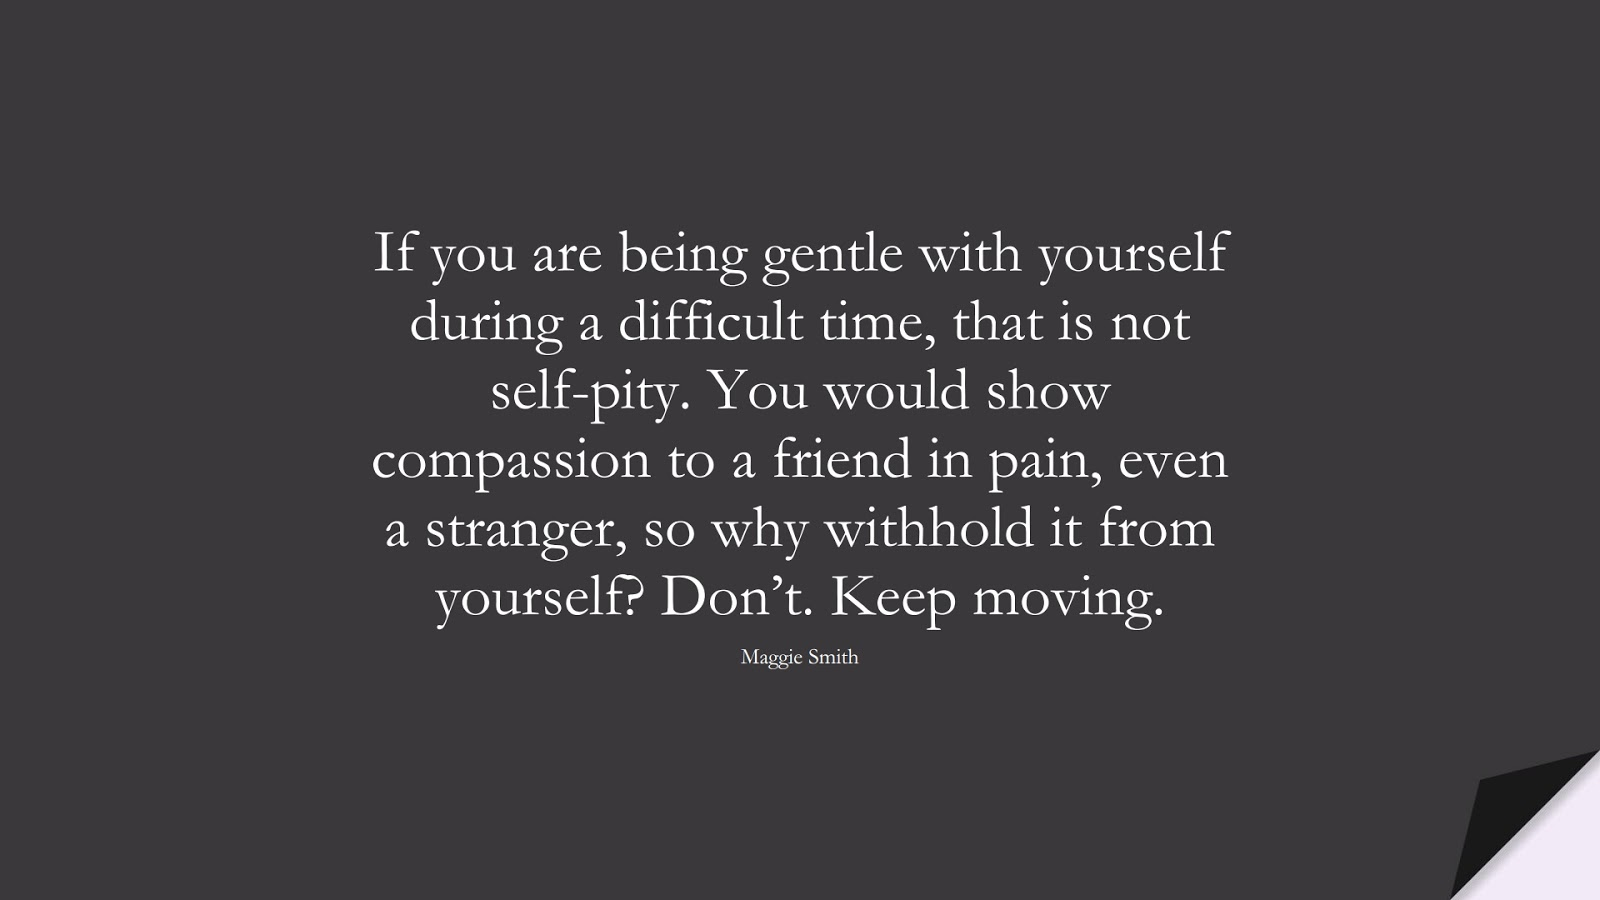 If you are being gentle with yourself during a difficult time, that is not self-pity. You would show compassion to a friend in pain, even a stranger, so why withhold it from yourself? Don't. Keep moving. (Maggie Smith);  #DepressionQuotes